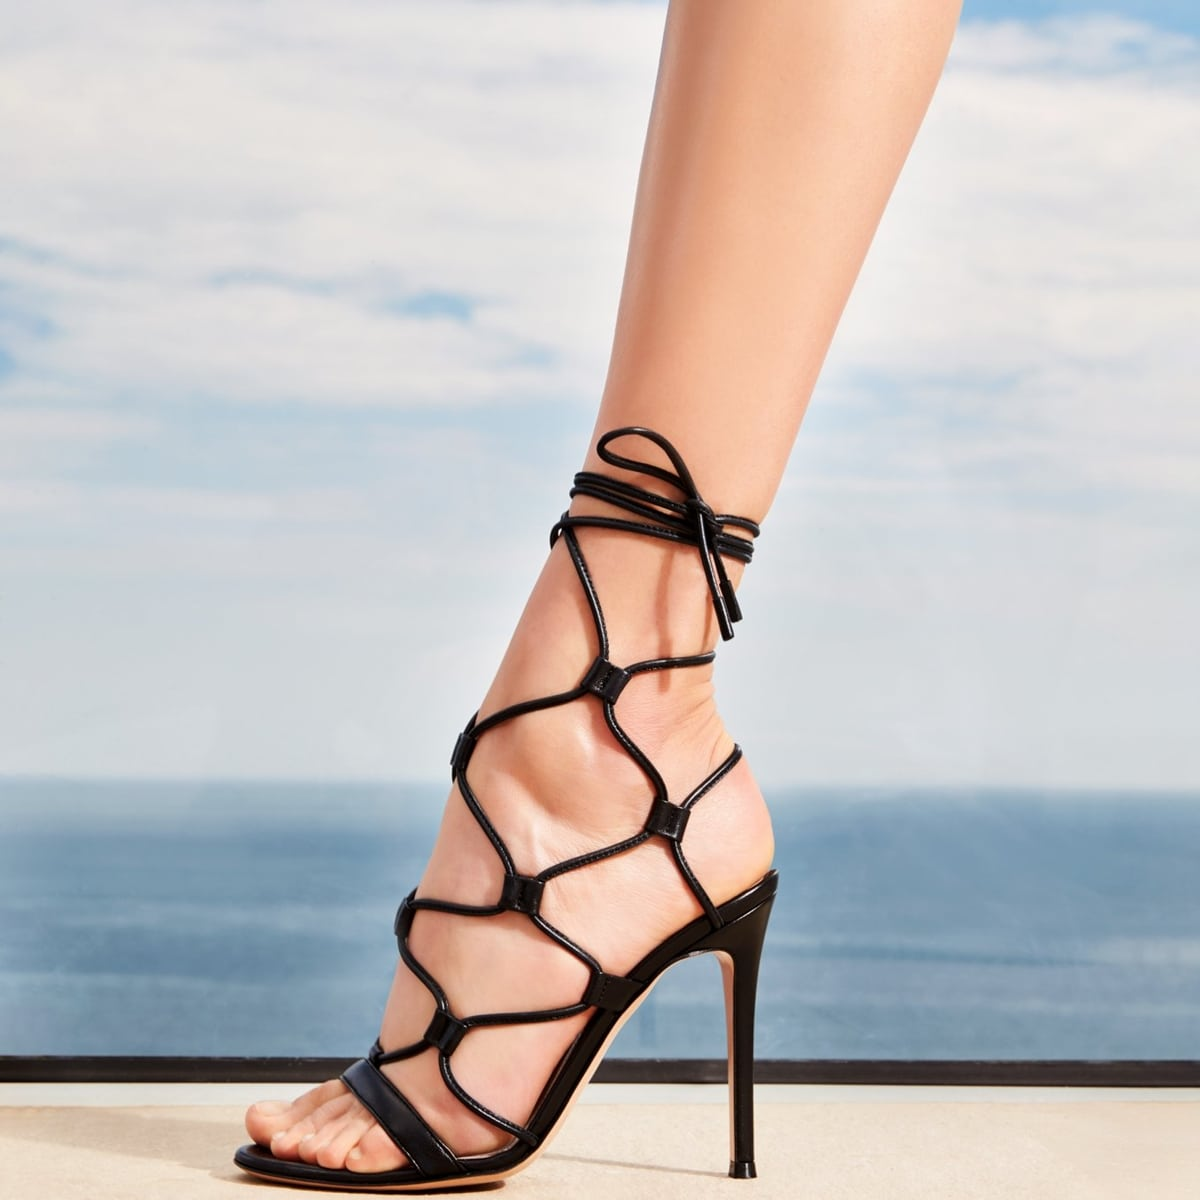 These black Gianvito Rossi Giza 105 leather sandals feature a round open toe, braided straps across the foot, ankle tie fastenings, and leather sole